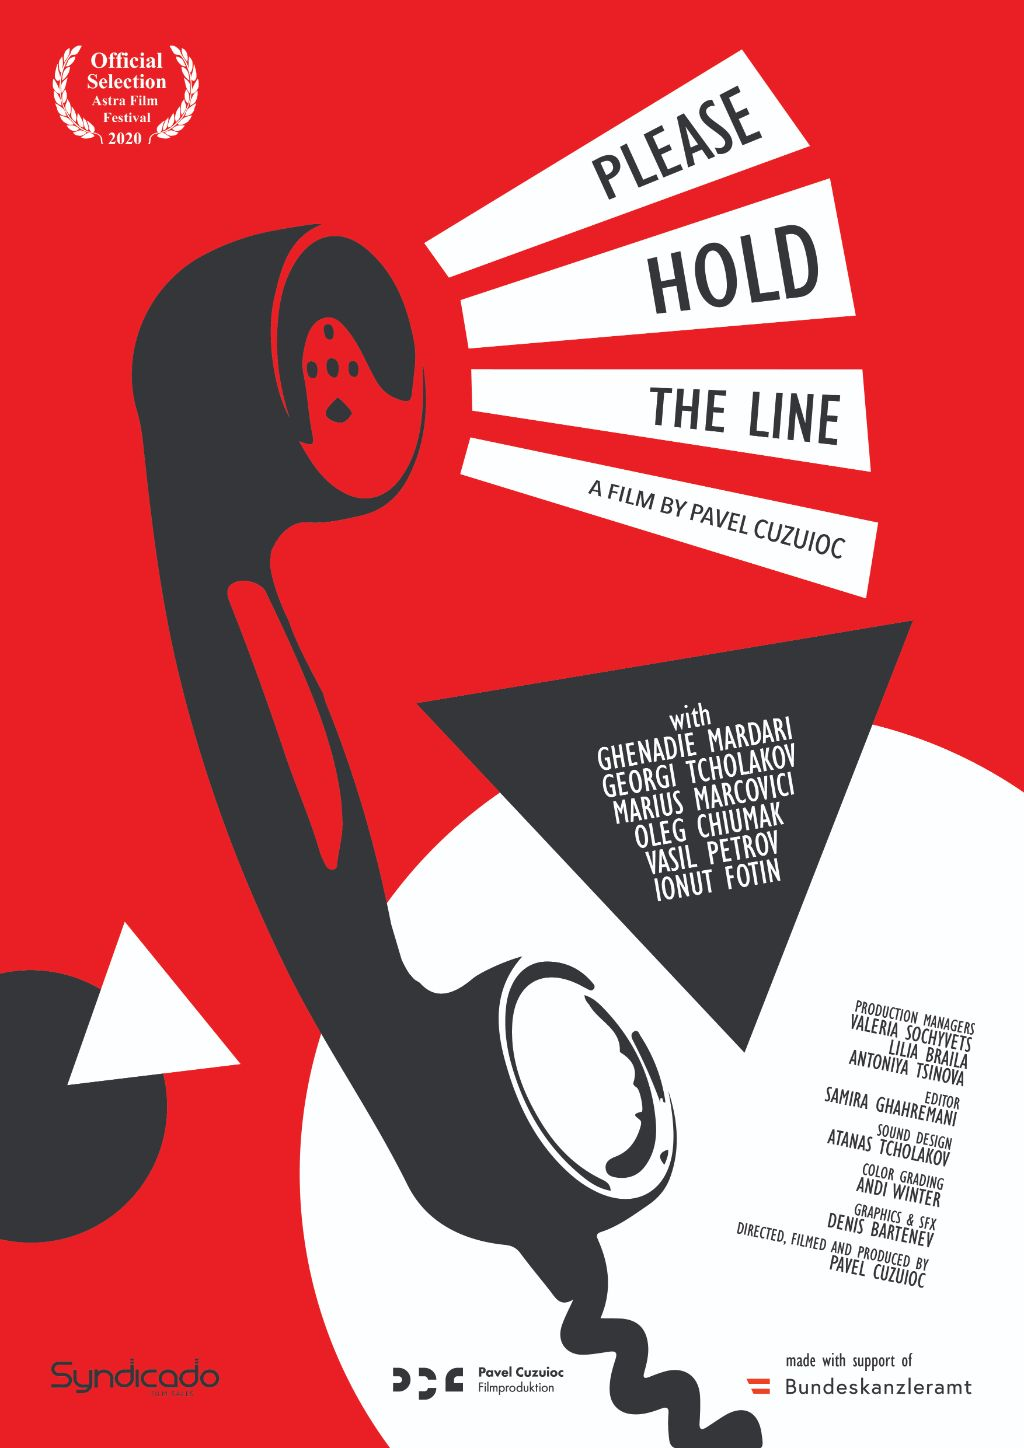 676_2020 Please Hold the Line_Poster 1